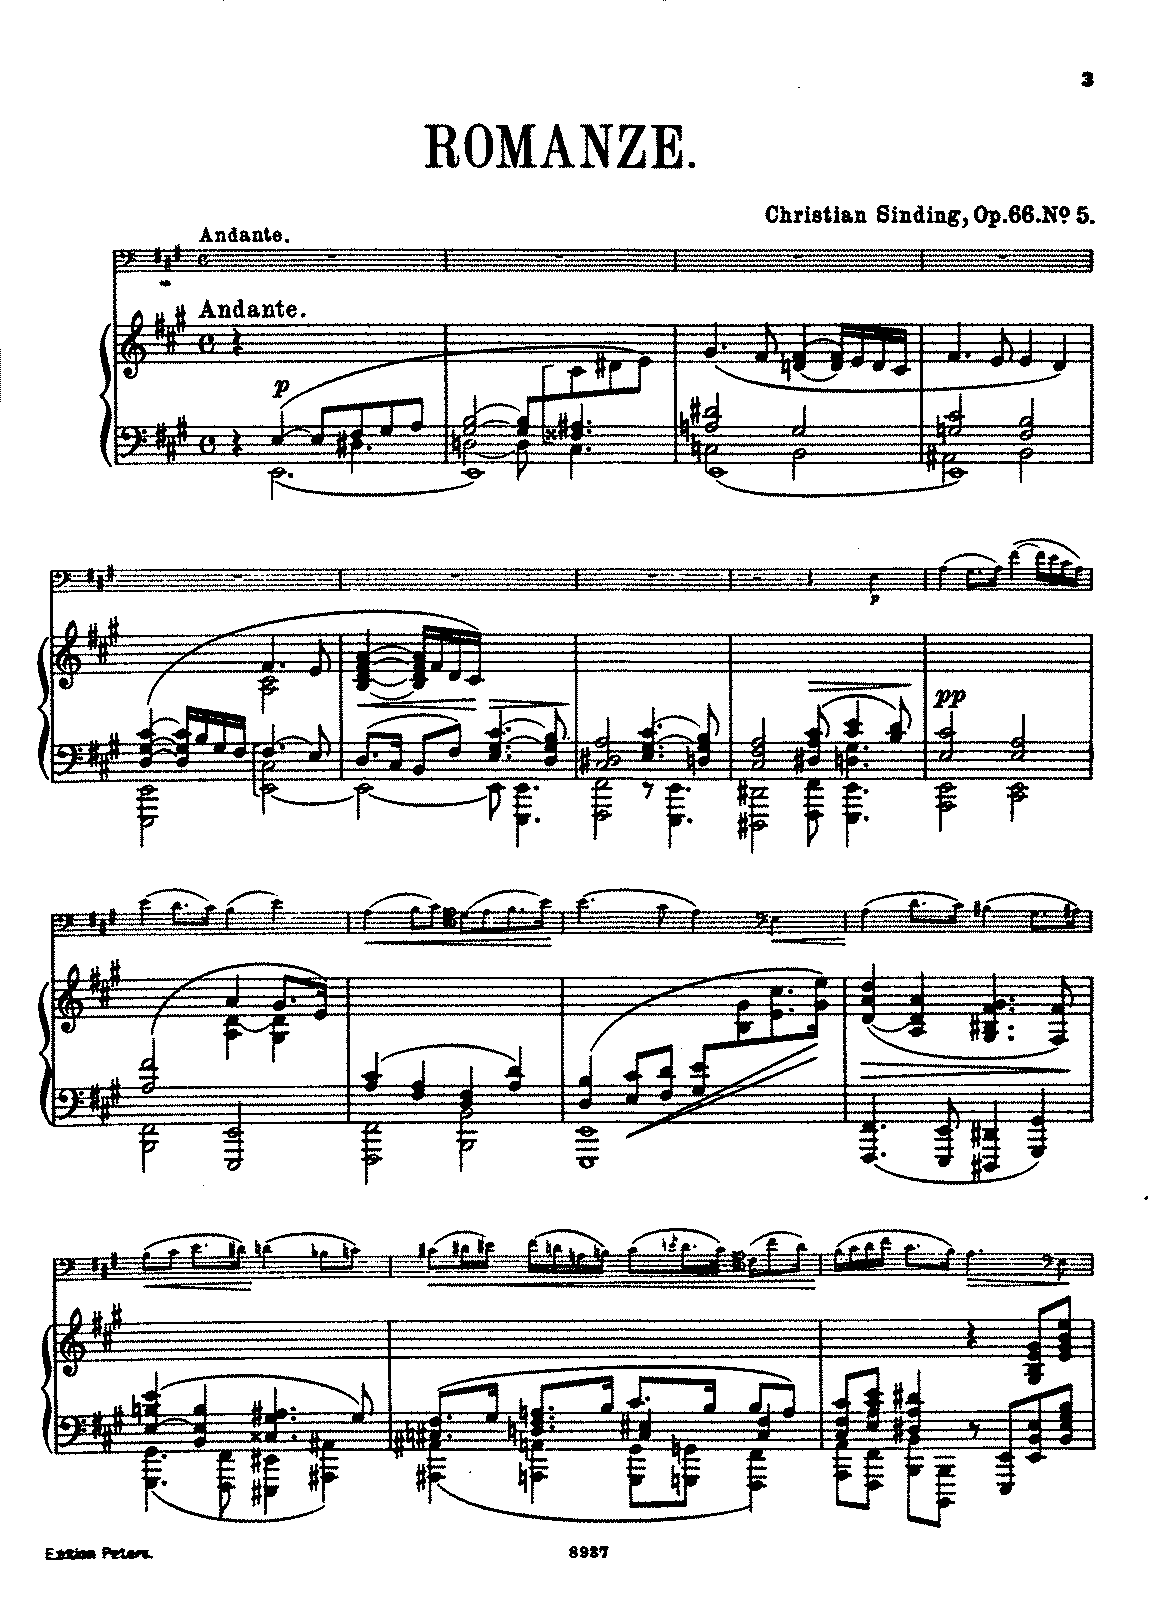 PMLP17232-Sinding - Romanze Op66 No5 for Cello and Piano Pno.pdf